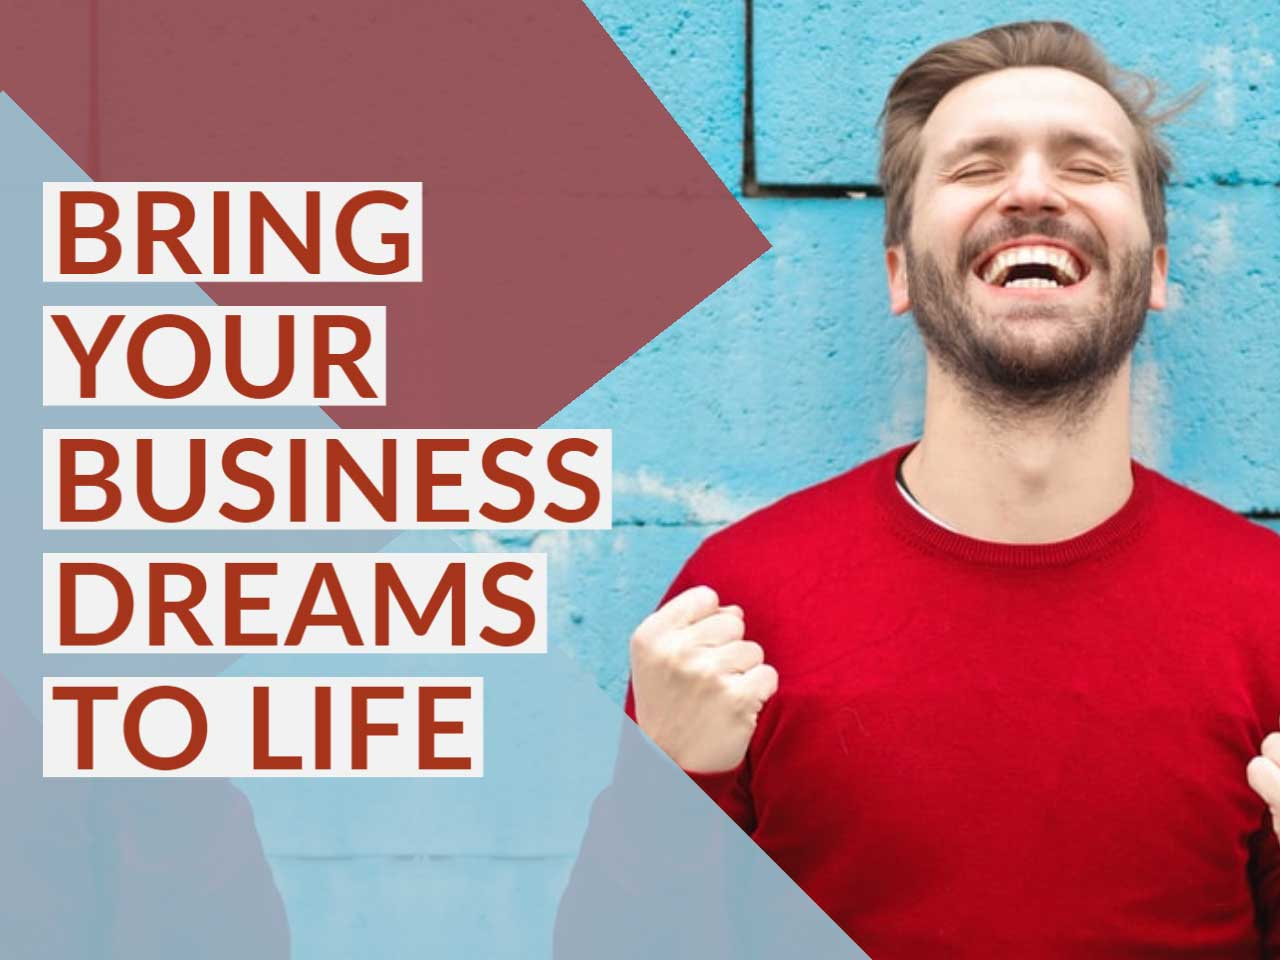 Bring Your Business Dreams To Life